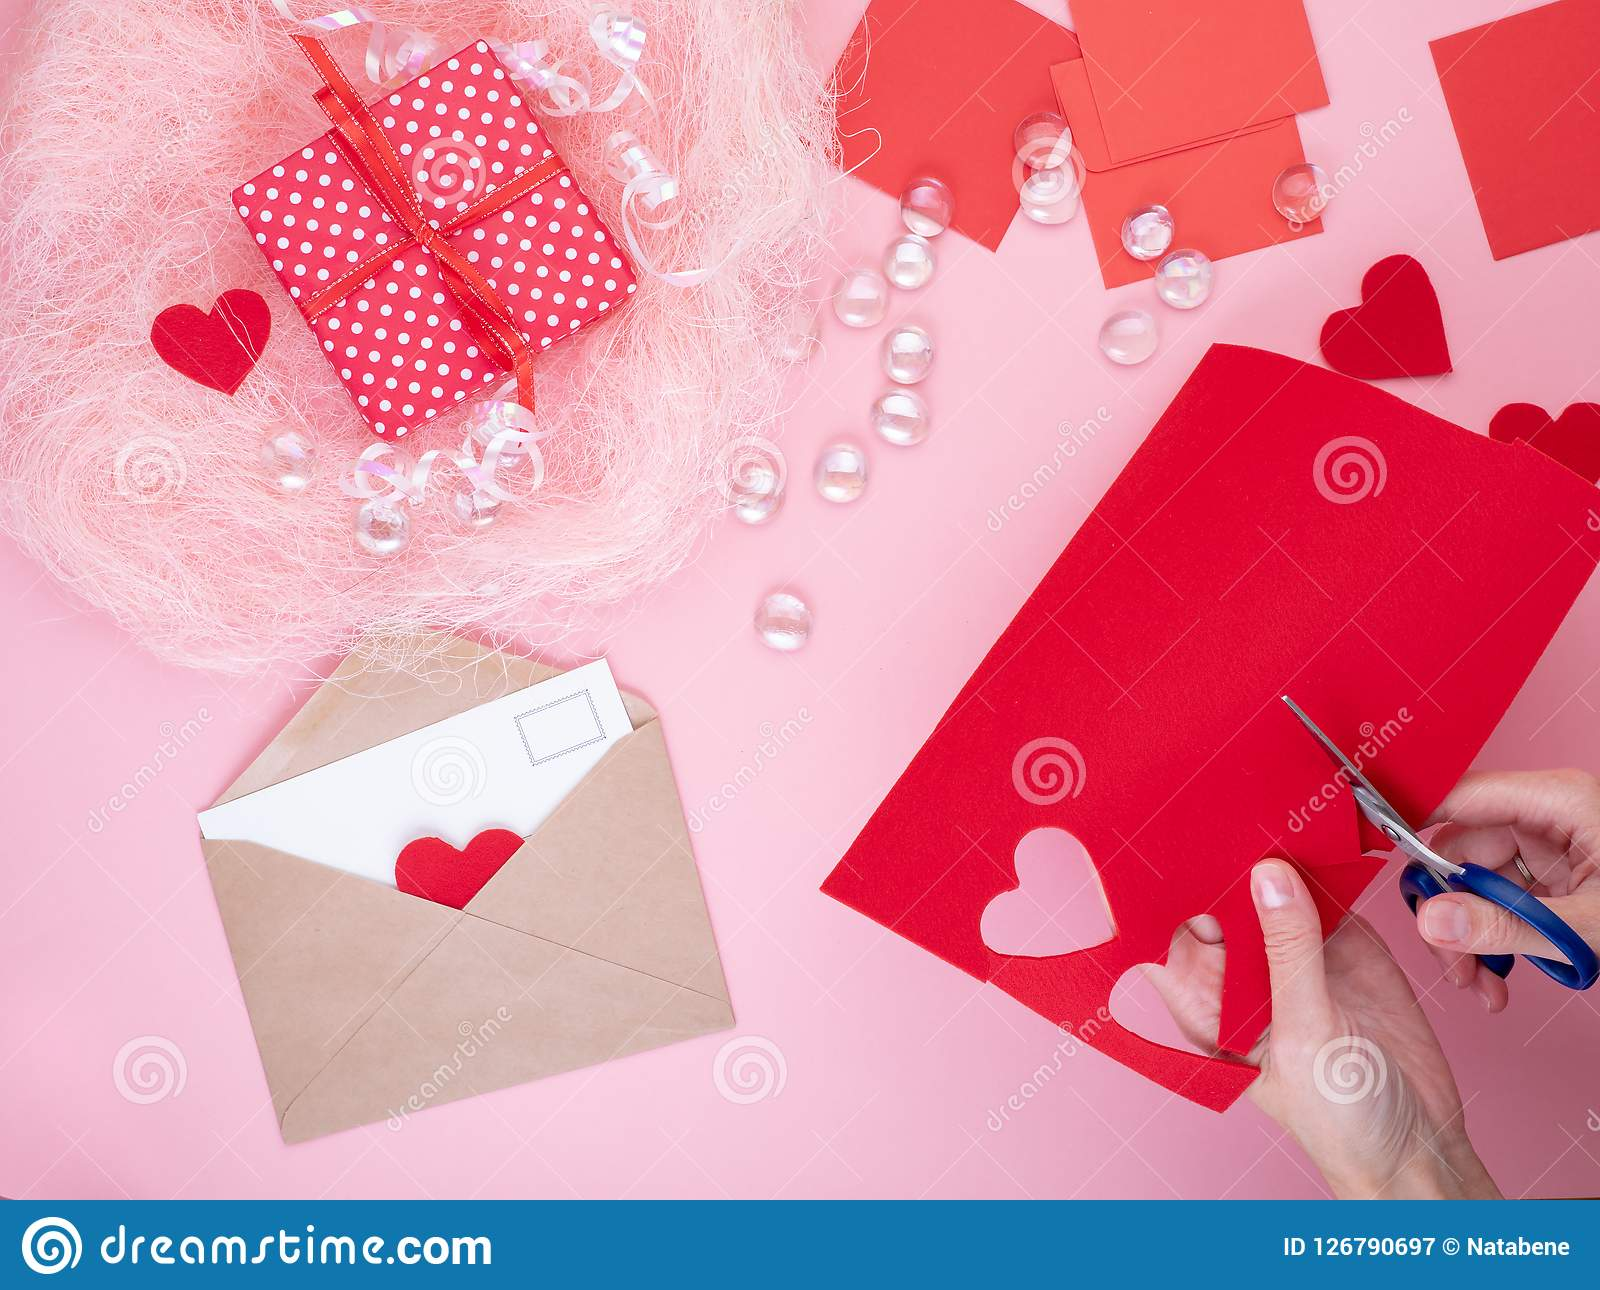 Woman cuts out red felt hearts, homemade crafts for Valentine`s